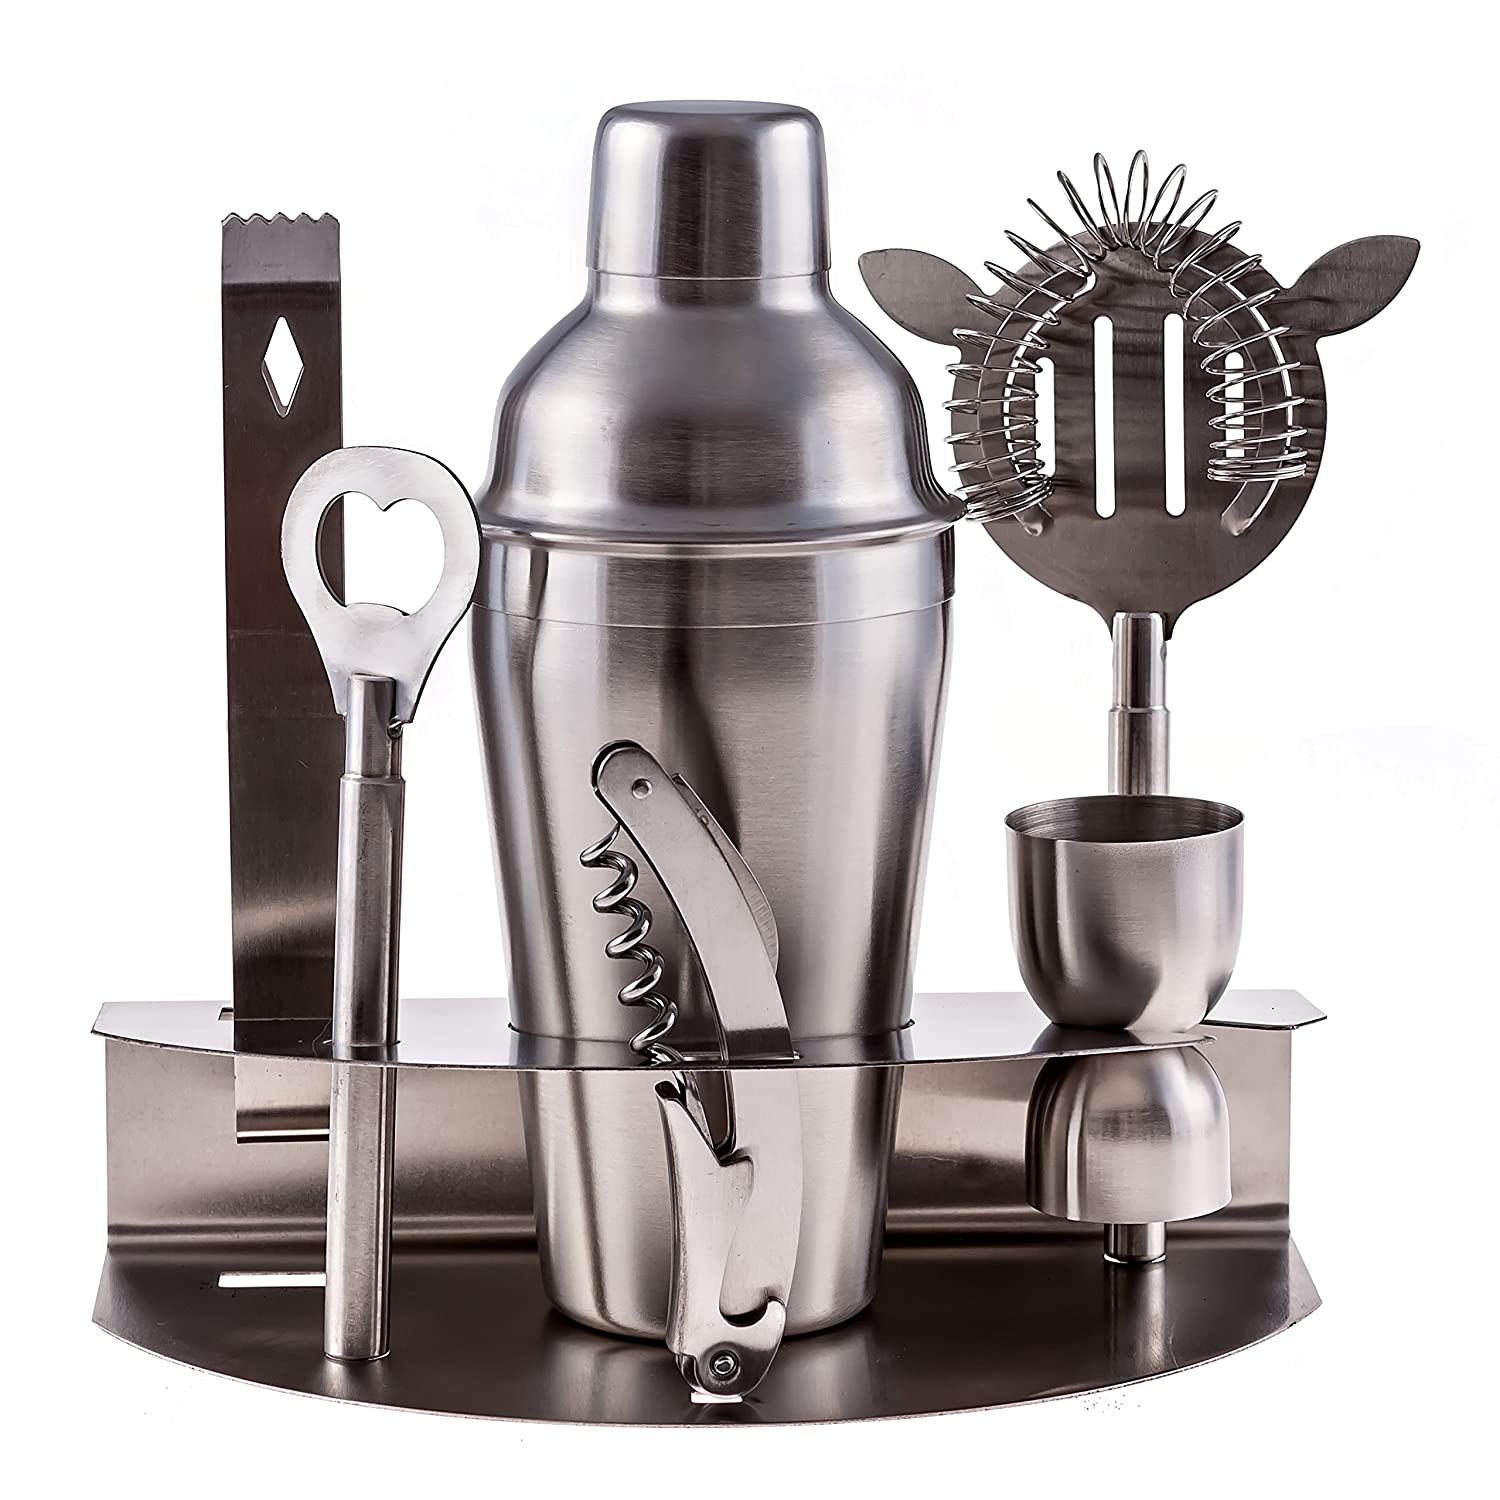 Bar Tool Set 100% Stainless Steel Bartender Martini Shaker Cocktail with Strainer Corkscrew Bottle Opener Jigger Ice Tongs and Storage Rack Cuisine Prefere TX-101